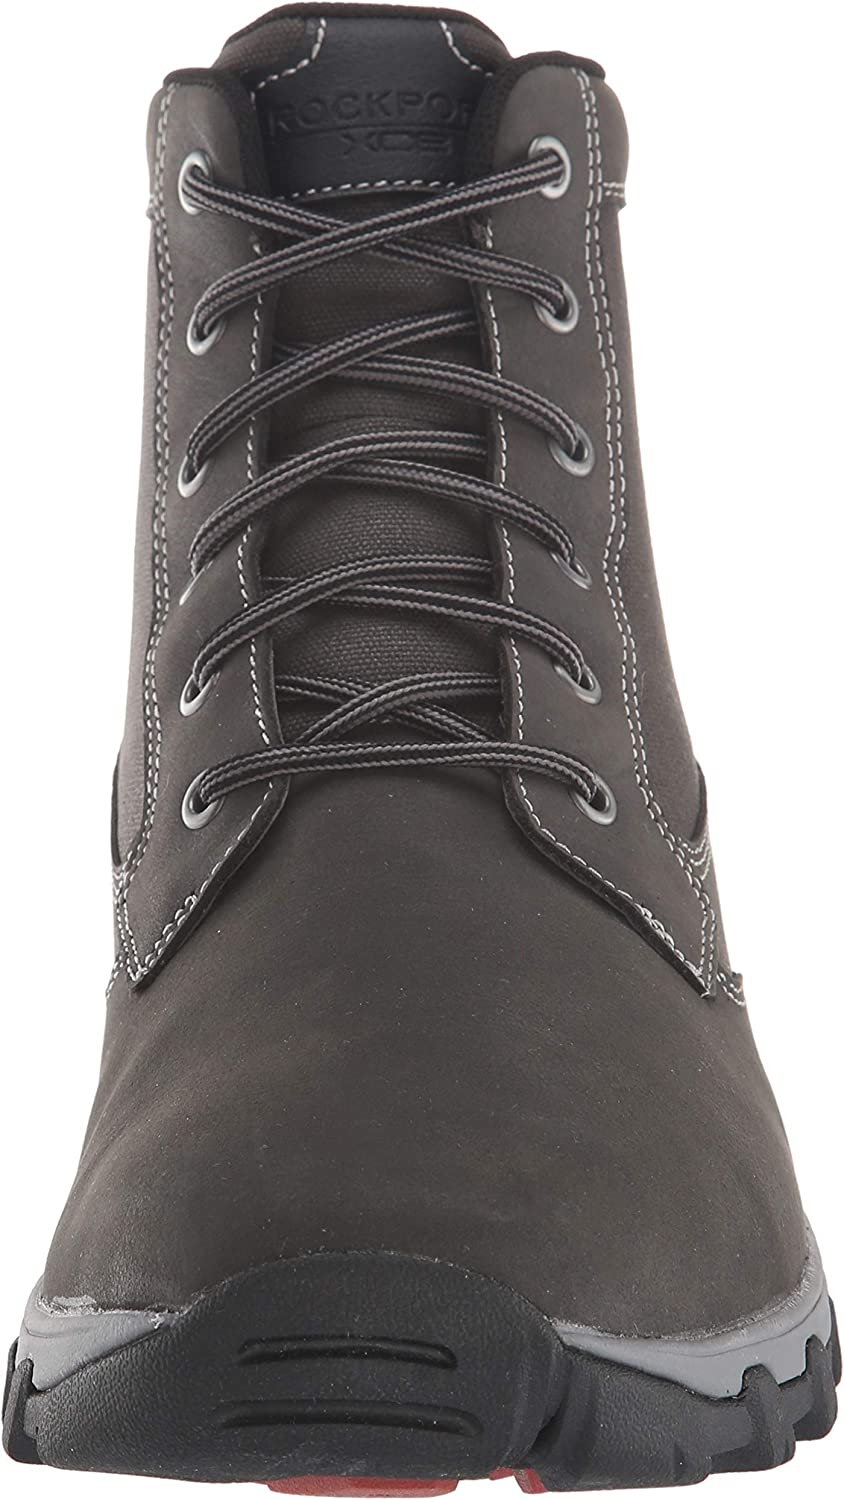 ROCKPORT Men's Cold Springs Plus Mid Boot Boot Grey